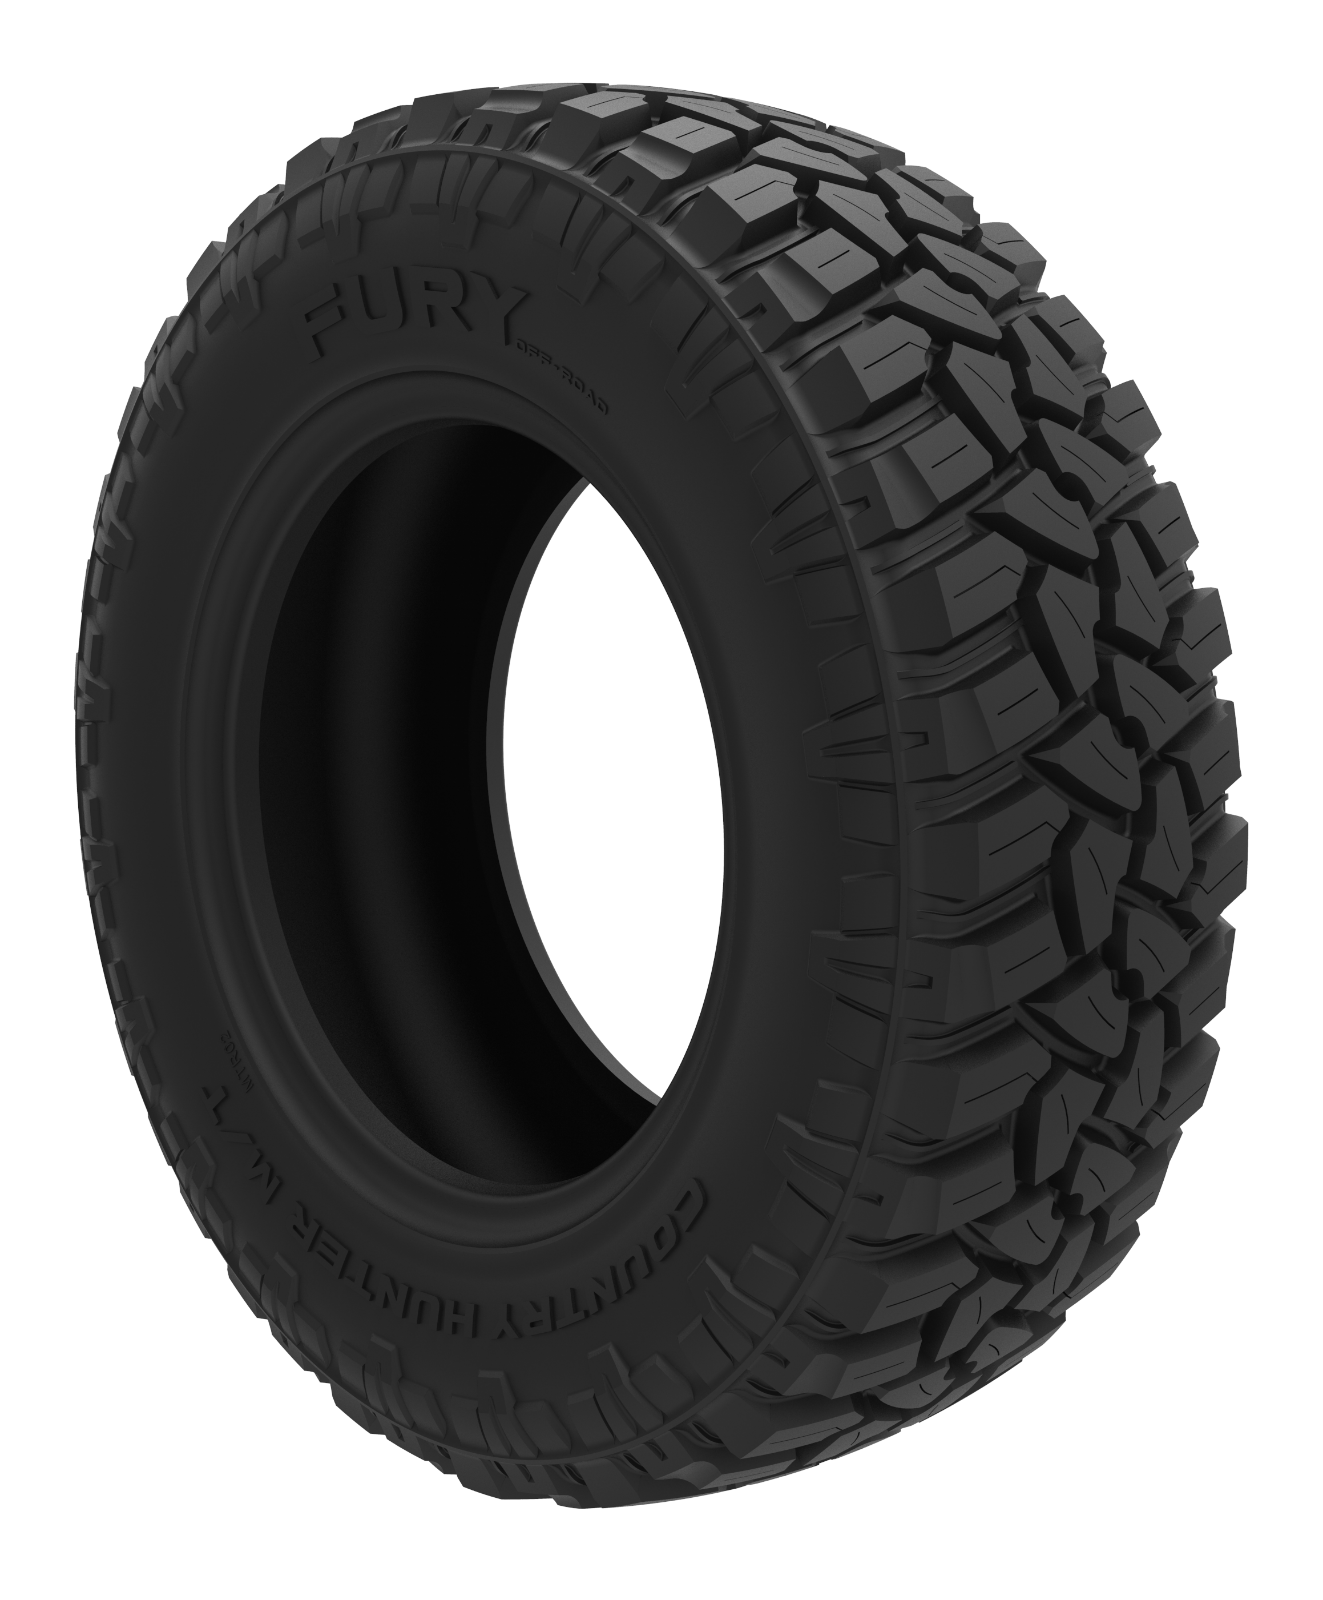 42X16.50R30LT FURY OFF-ROAD COUNTRY HUNTER M/T II 127Q 10PLY (SET OF 4) image 3